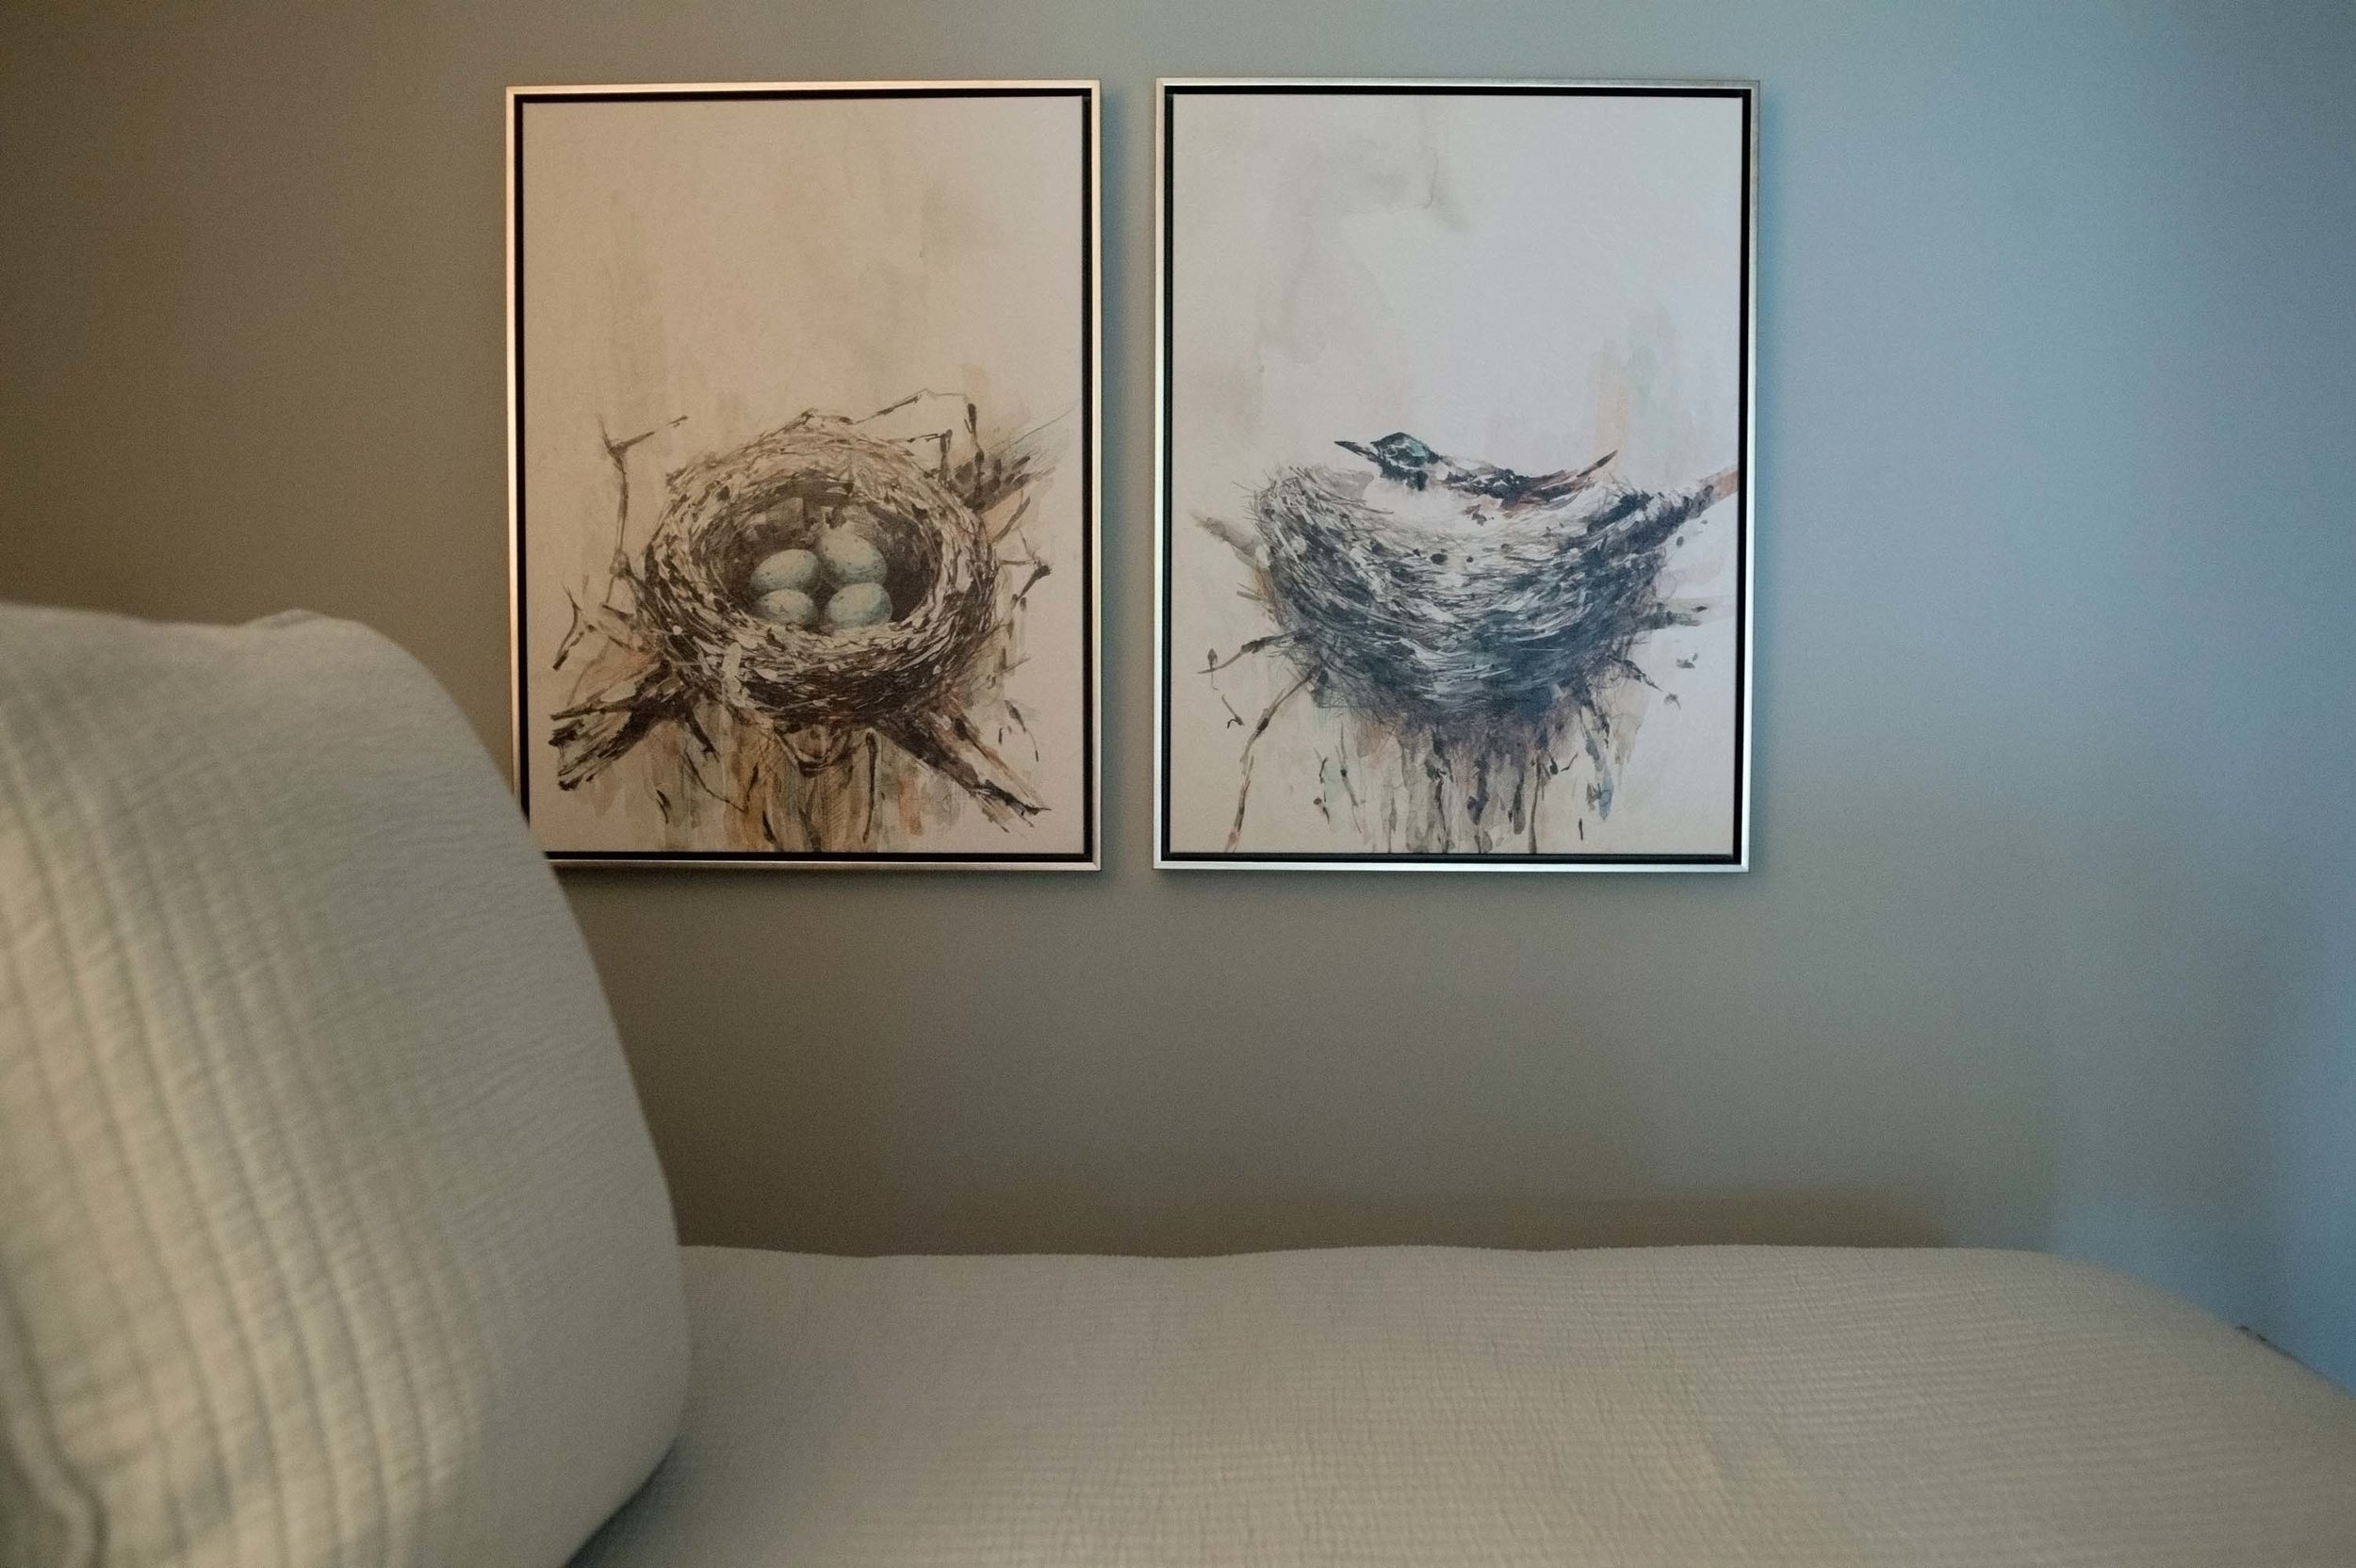 Bedroom with two set of artwork on the wall